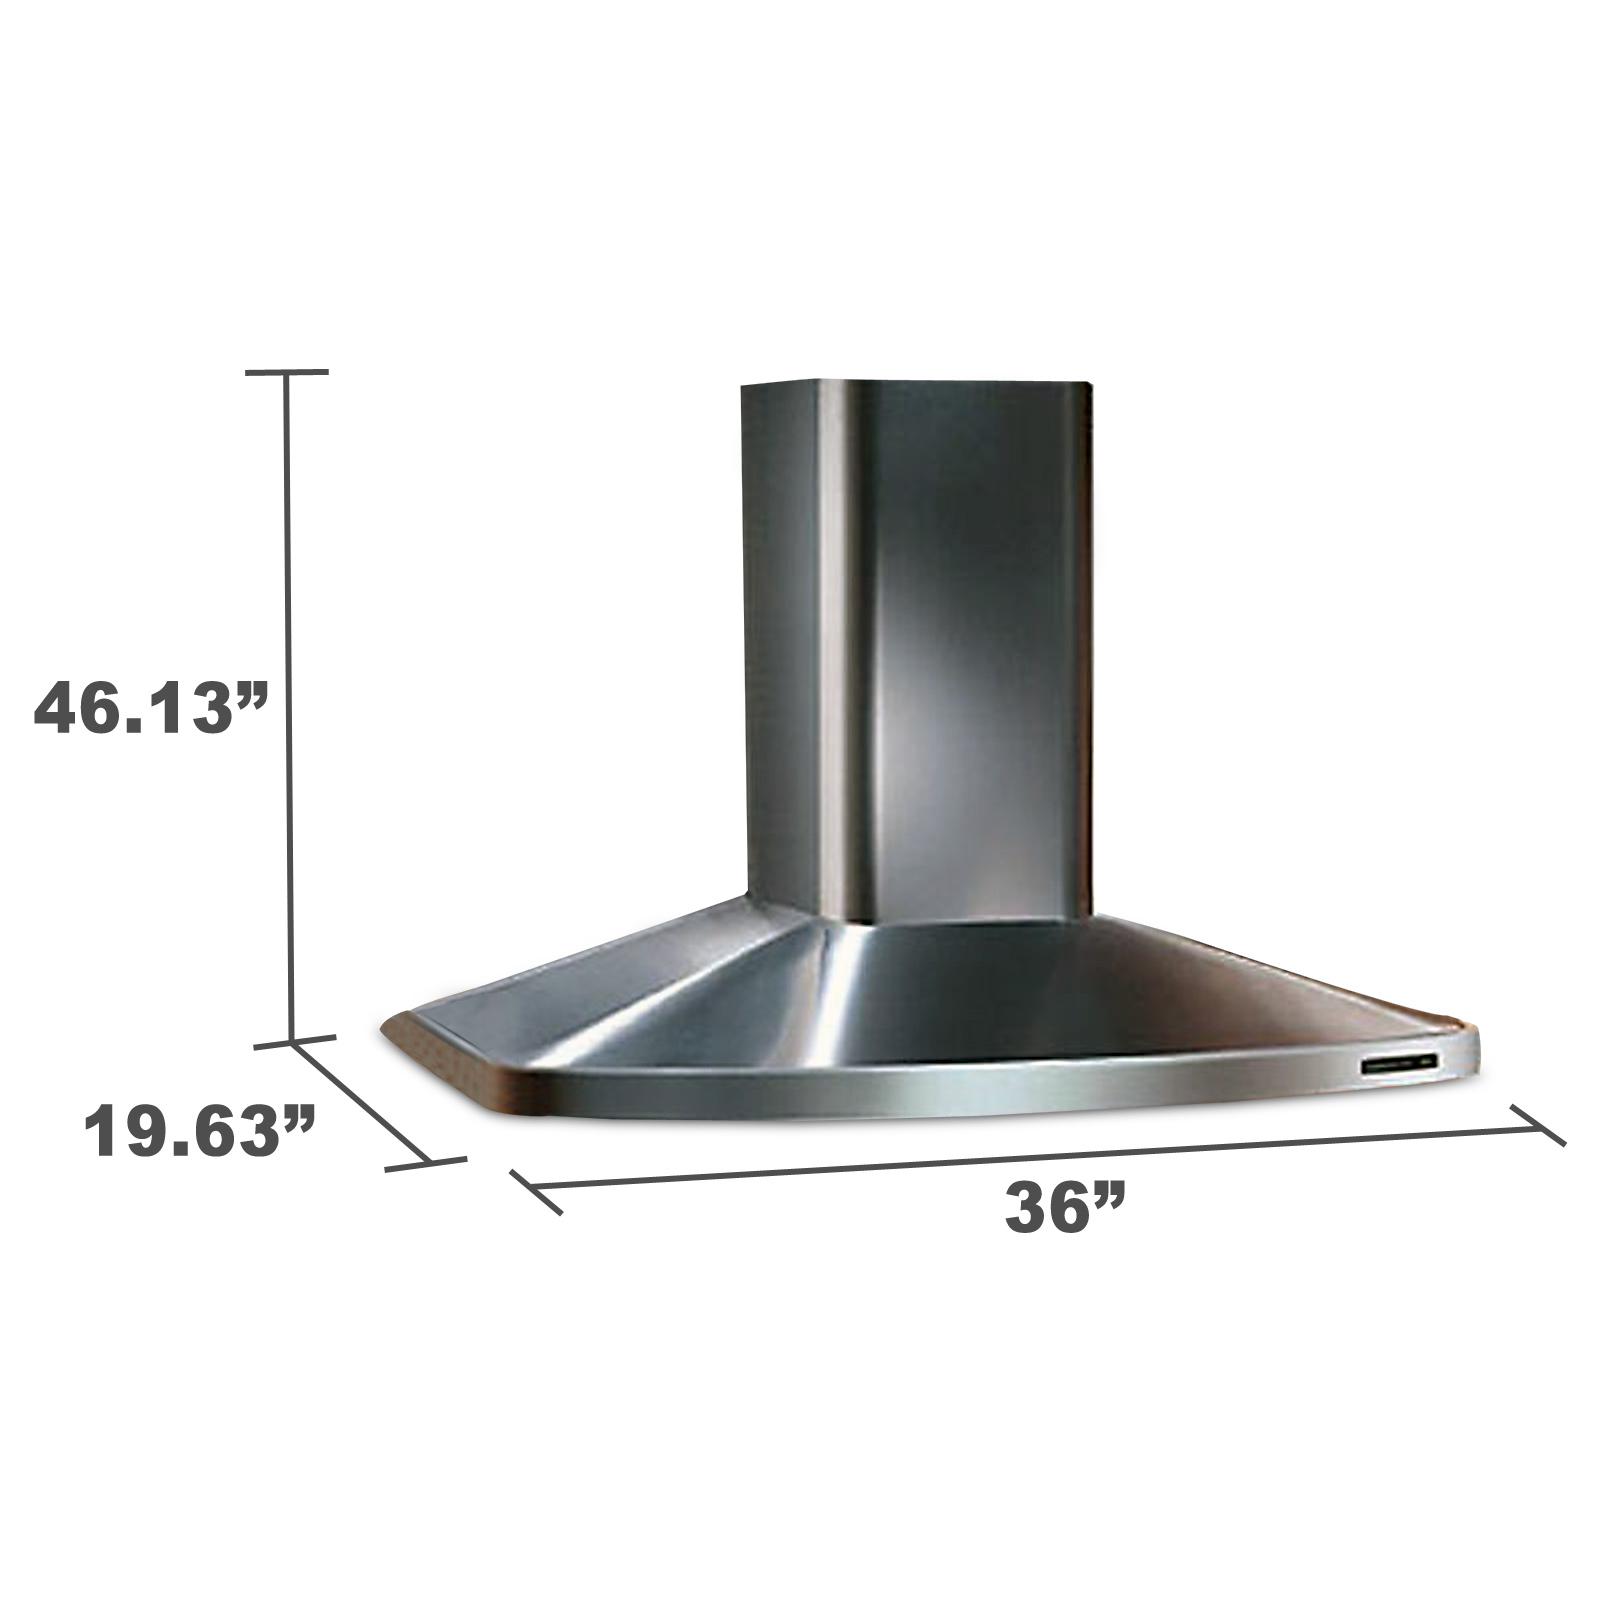 "Kenmore Elite 52363 36"" Italian-Design Wall-Mounted  Range Hood"